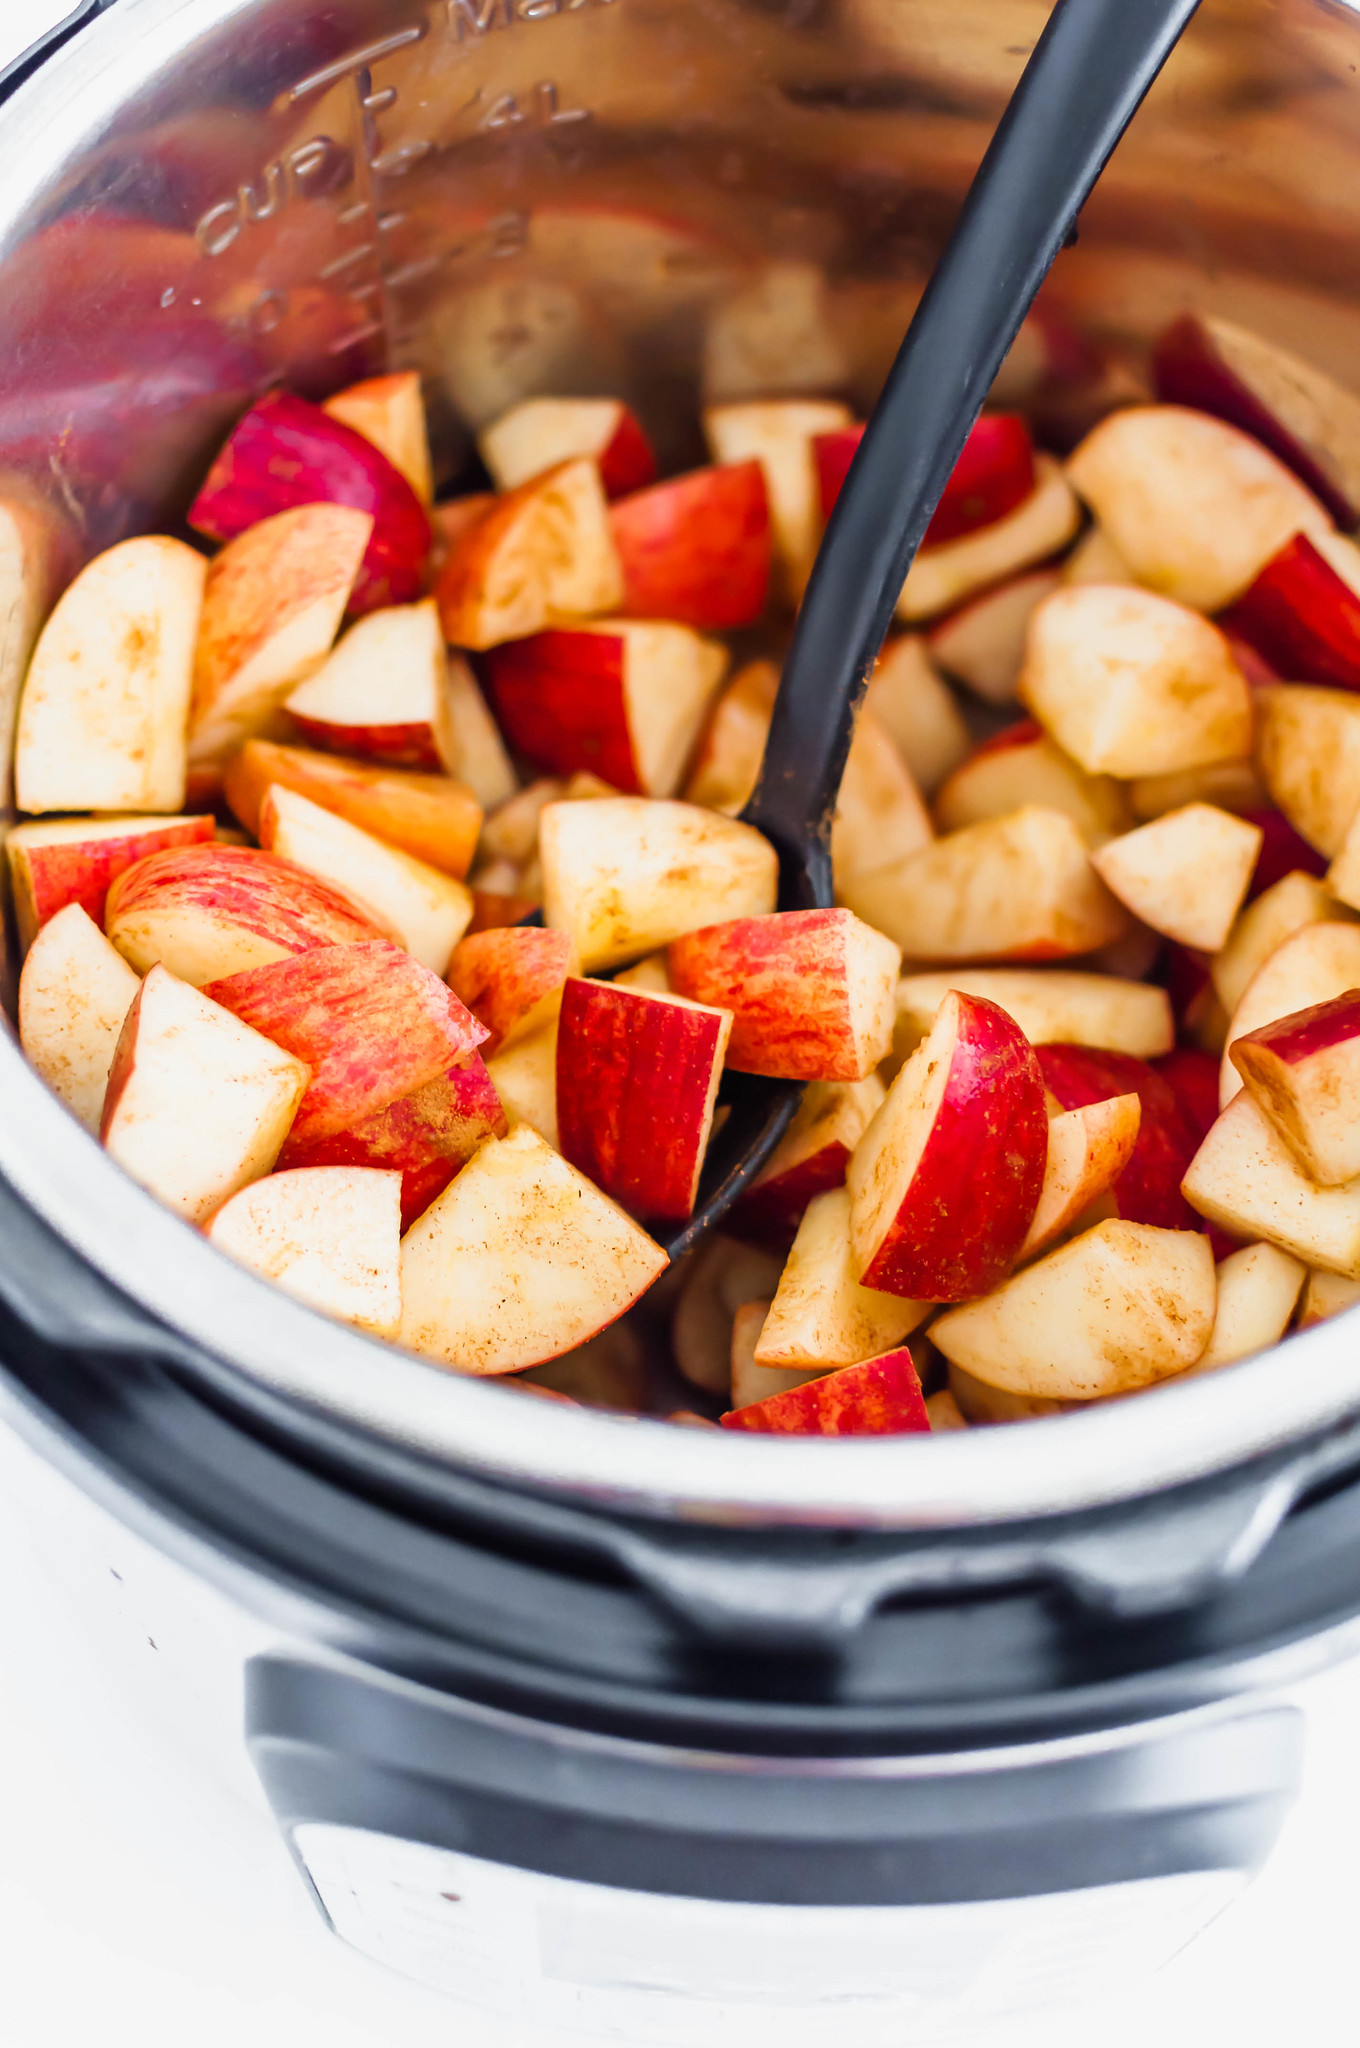 Apples and cinnamon in the Instant Pot ready to cook.